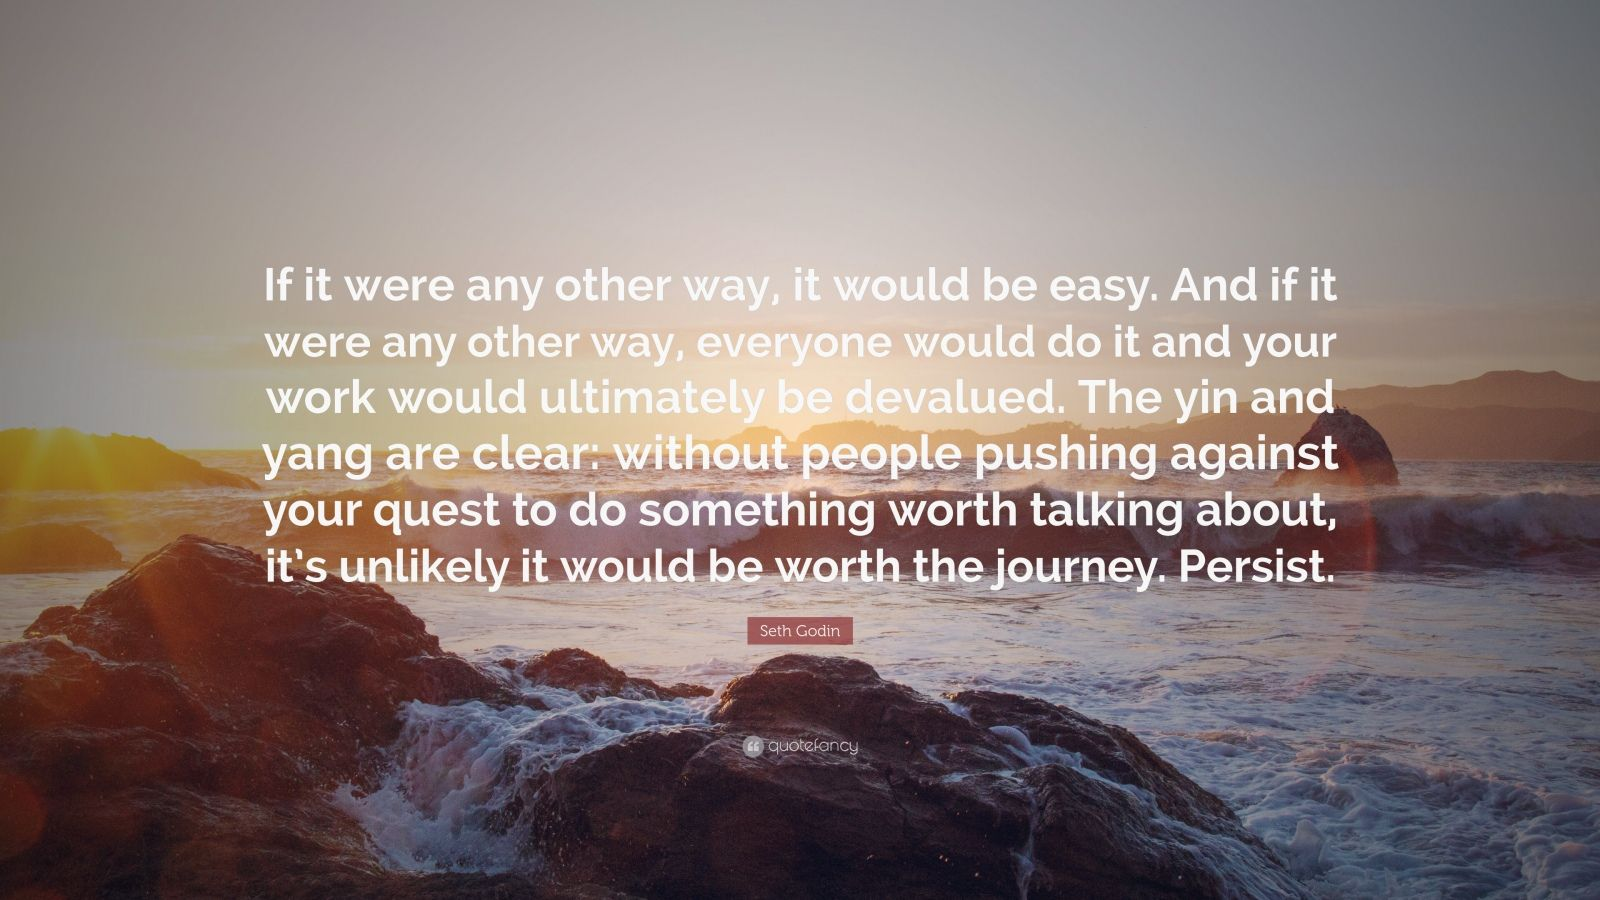 """Seth Godin Quote: """"If it were any other way, it would be easy. And if it were any other way, everyone would do it and your work would ultimately be devalued. The yin and yang are clear: without people pushing against your quest to do something worth talking about, it's unlikely it would be worth the journey. Persist."""""""